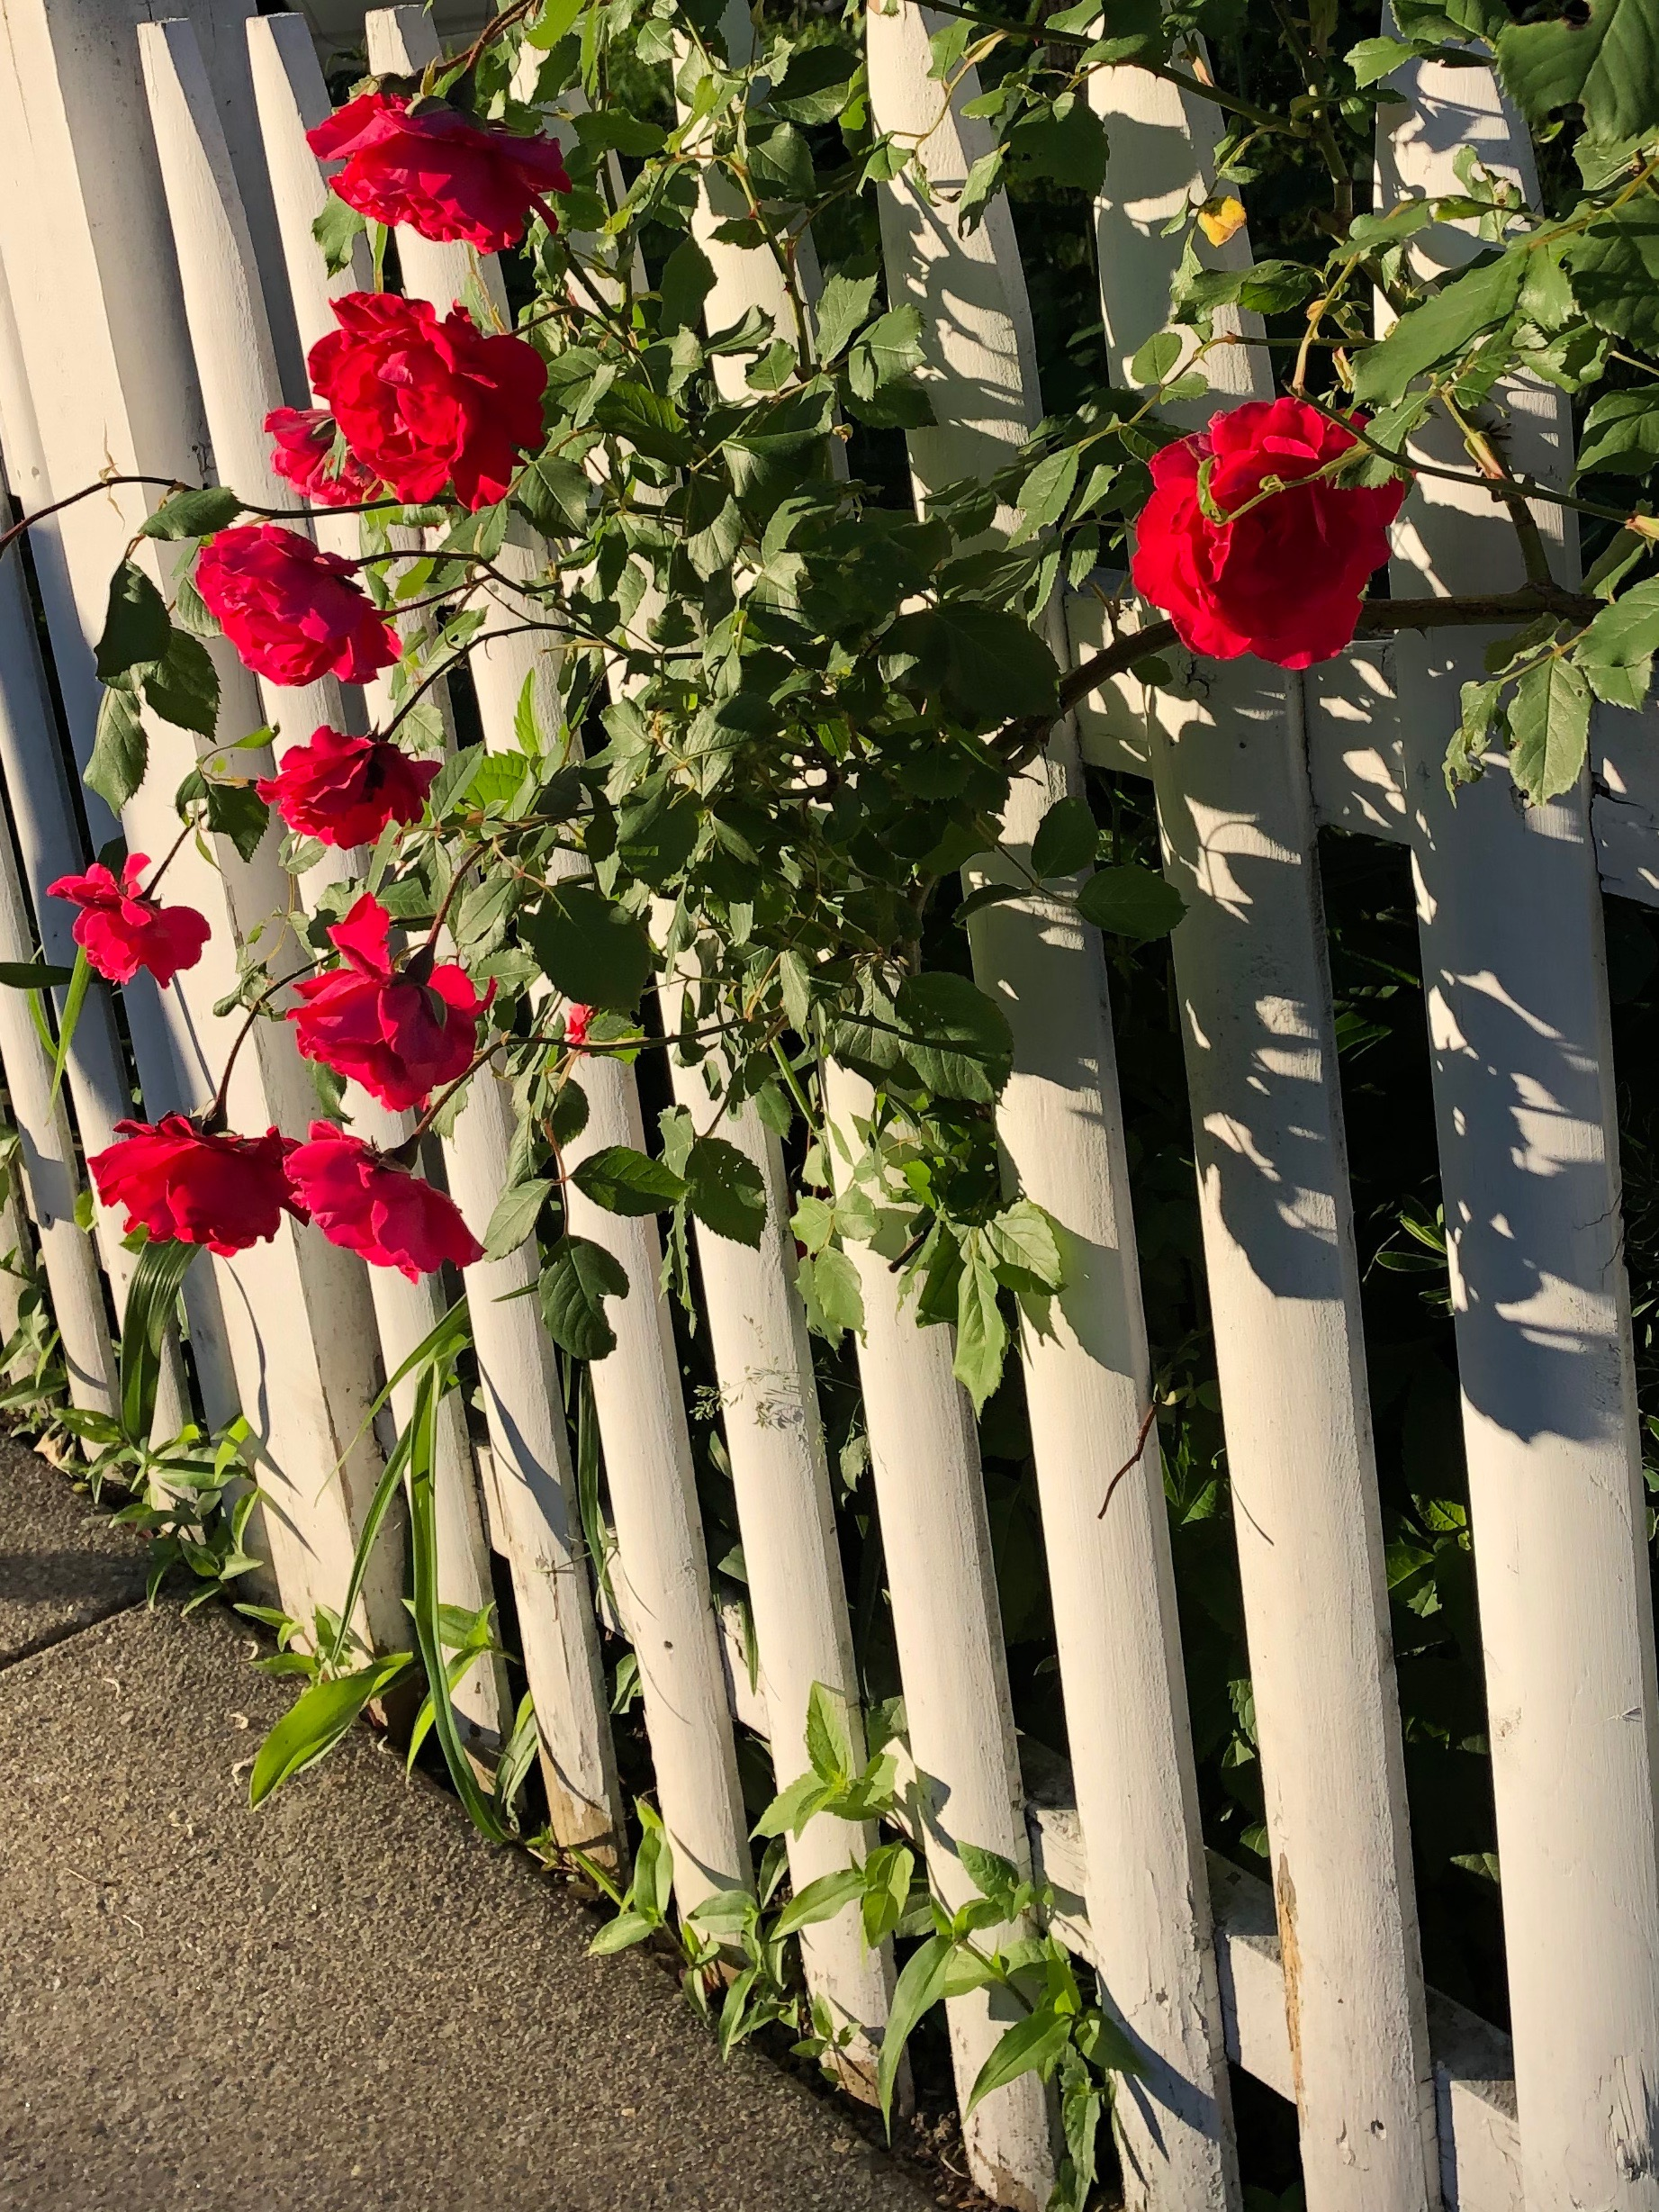 061219-roses-at-end-of-day-Thoreau-Street